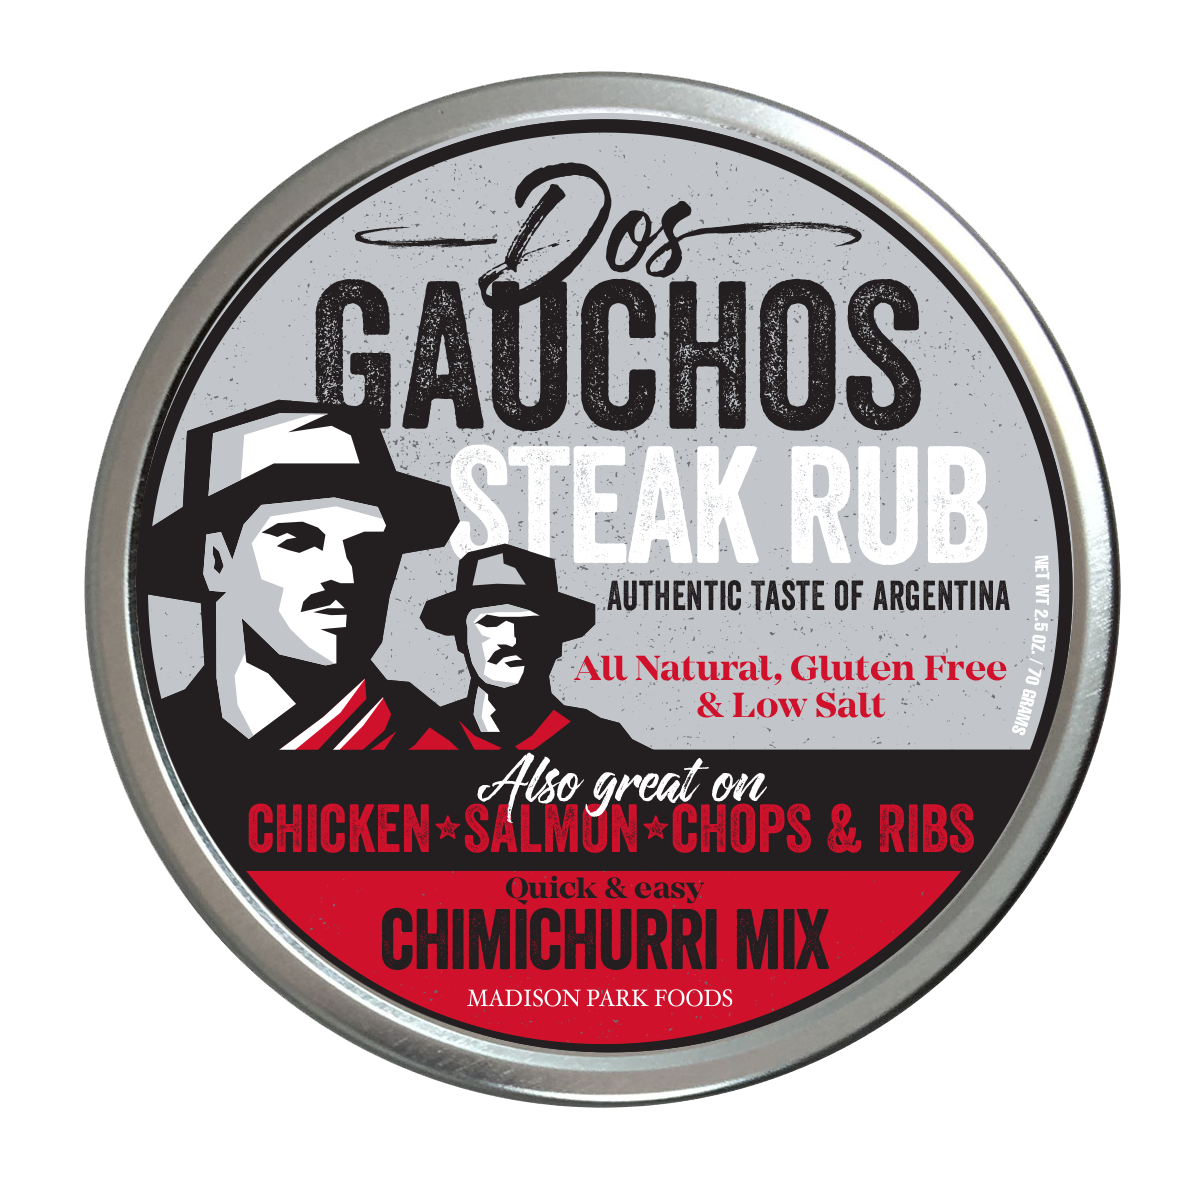 Dos Gauchos Steak Rub & Chimichurri Rojo MixAuthentic taste of Argentina